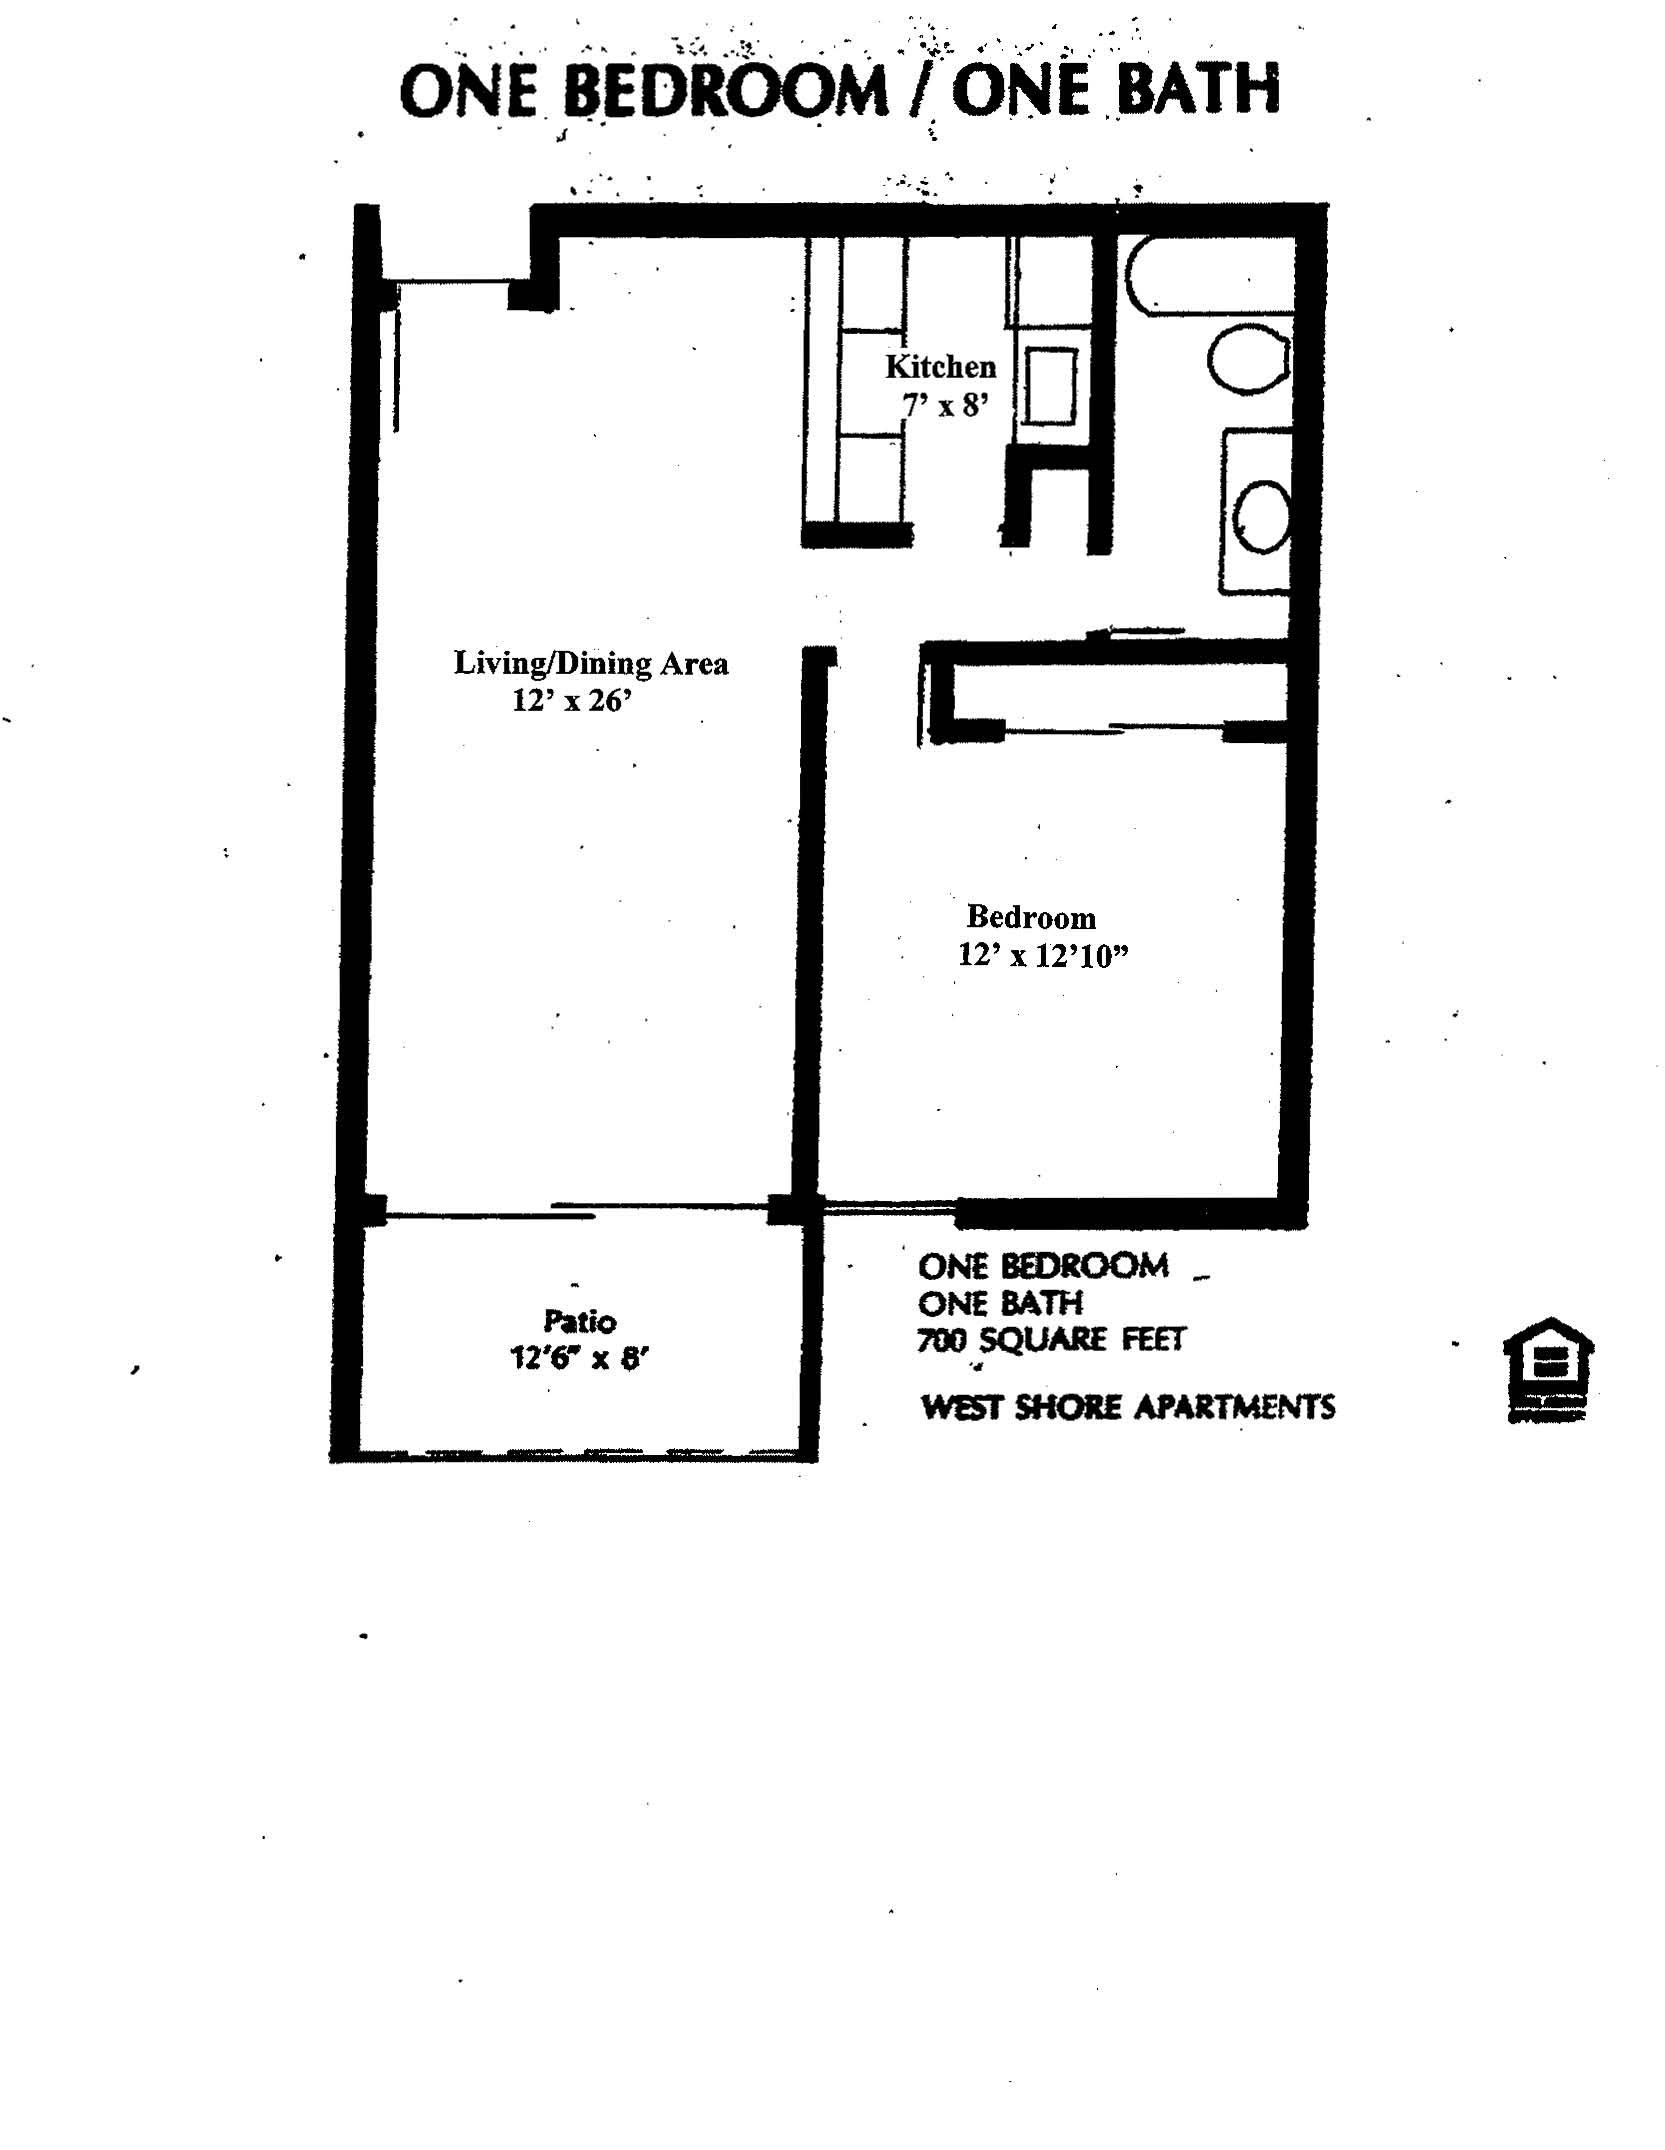 WestShore Apartments/Embassy Apartments   Floorplan   Westshore A1   None  Available